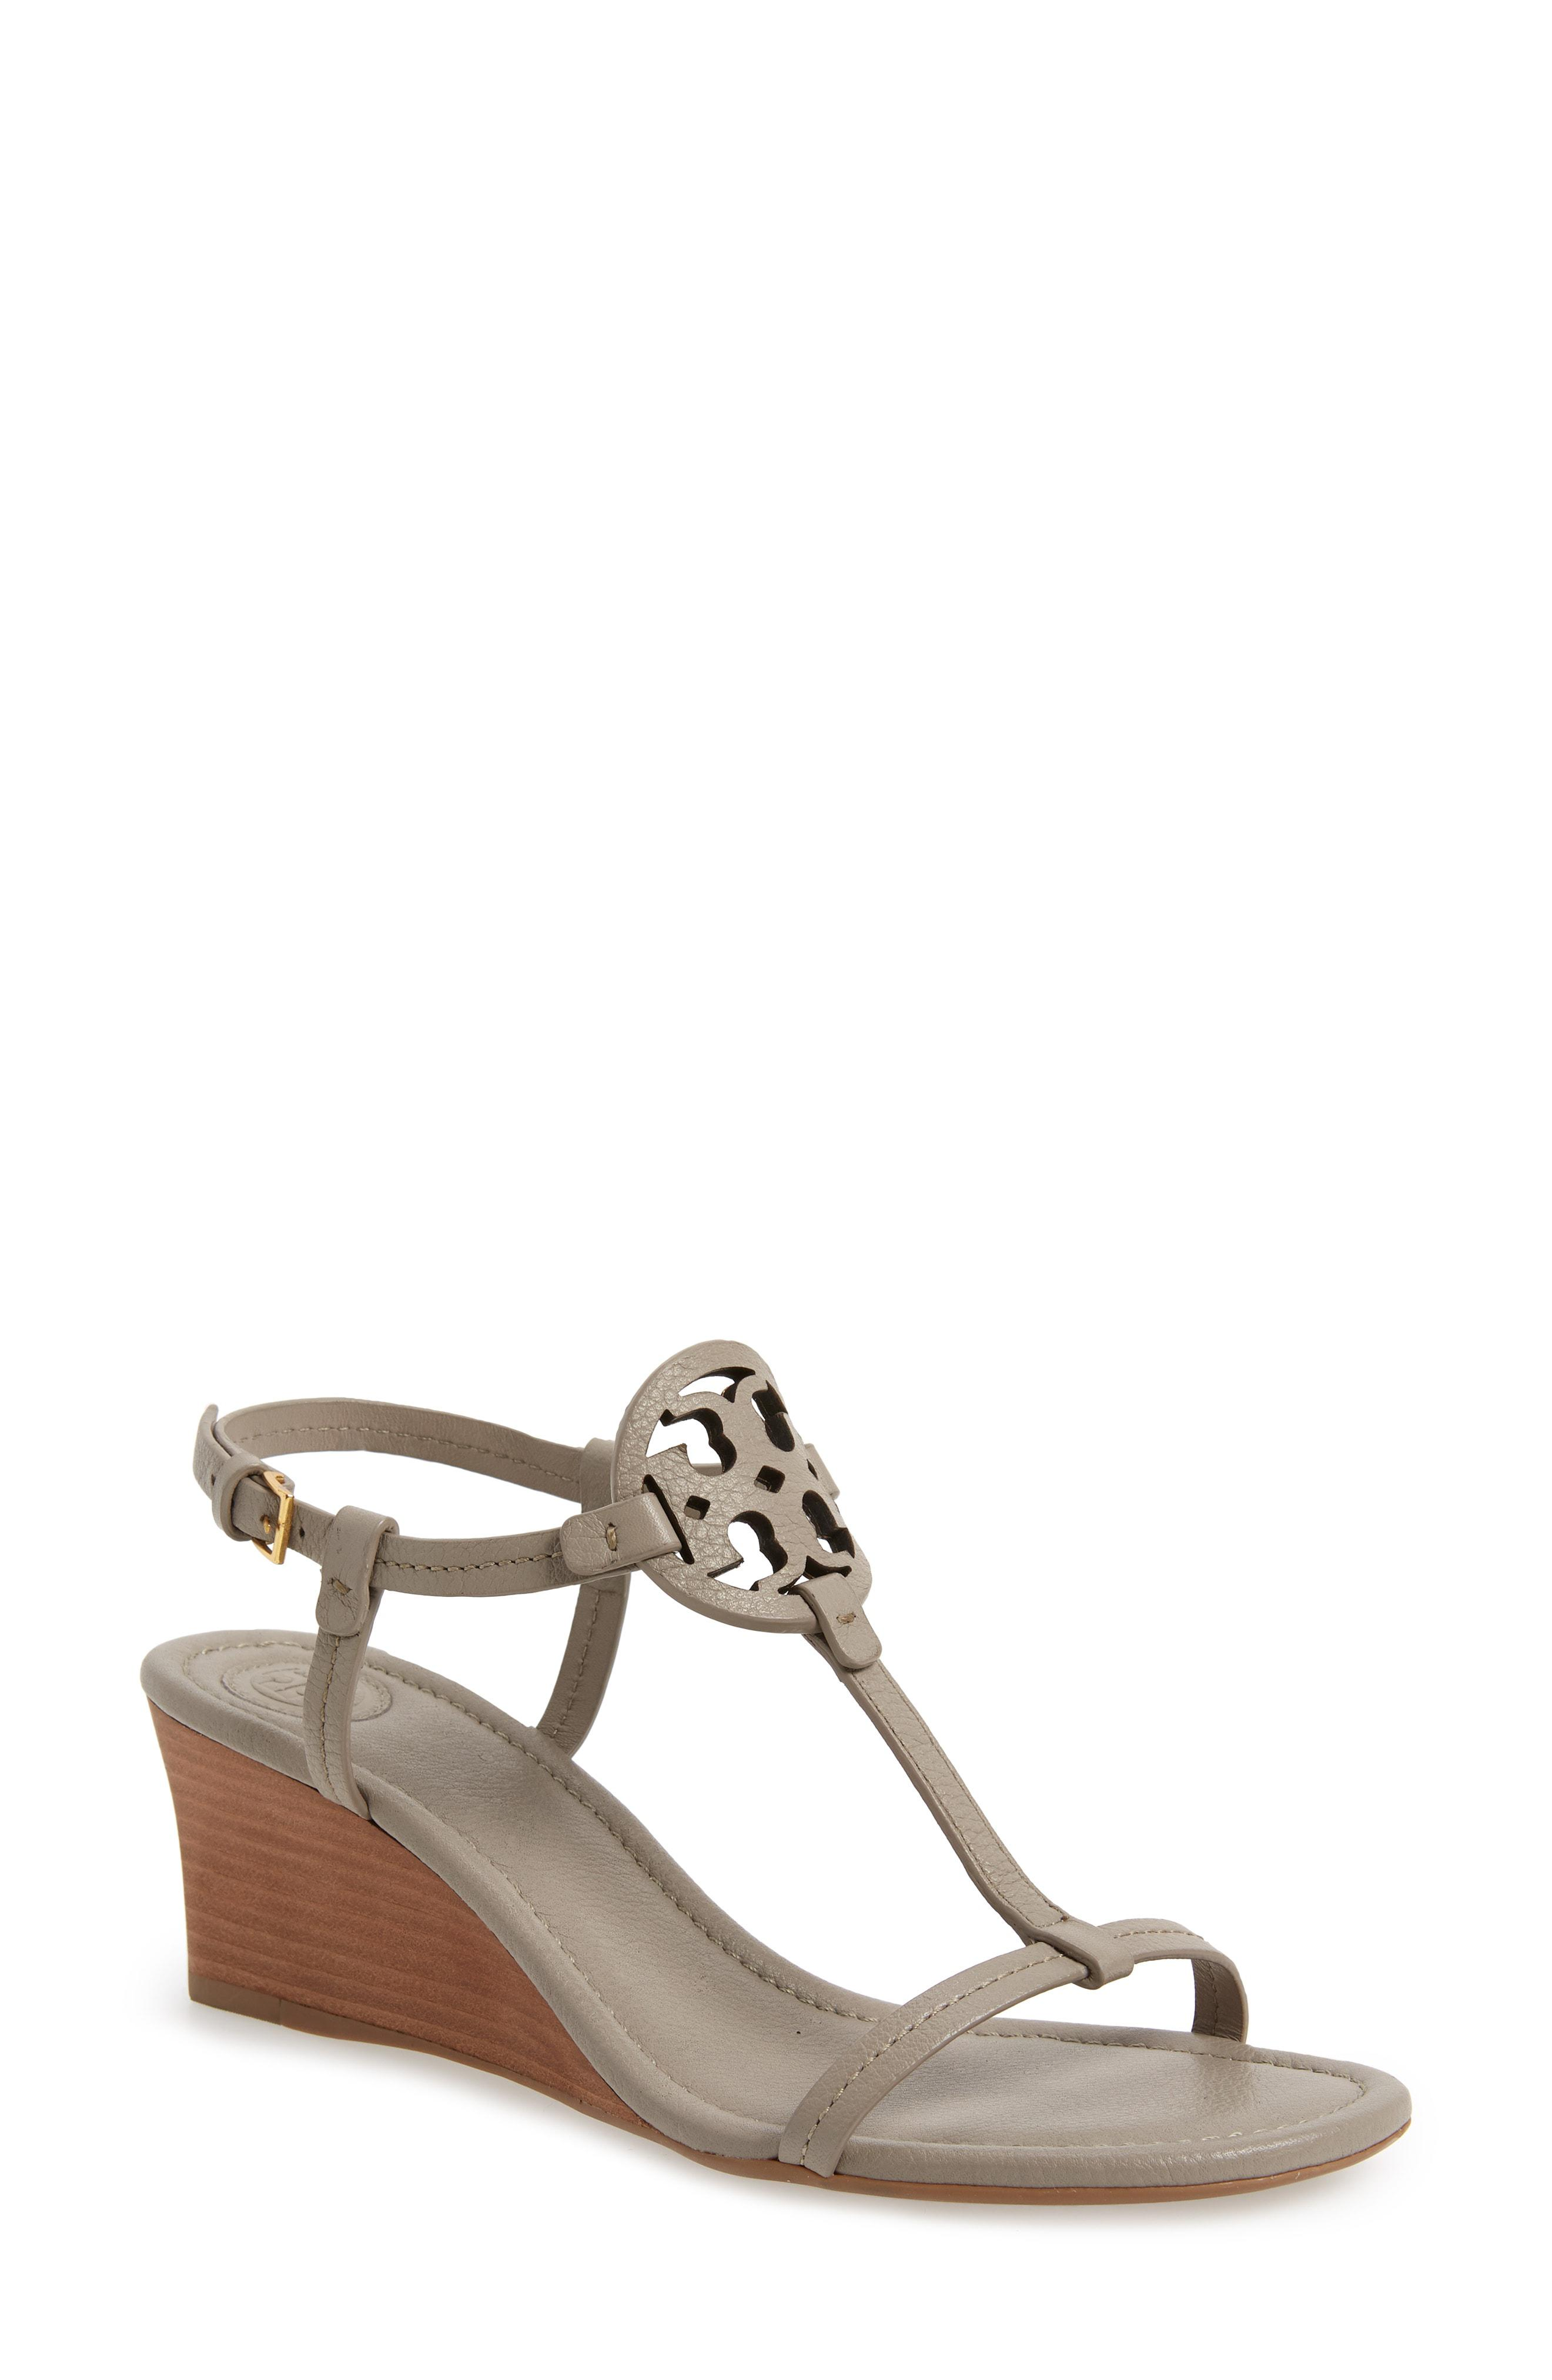 78bf4e99a90 Lyst - Tory Burch Miller Wedge Sandal in Gray